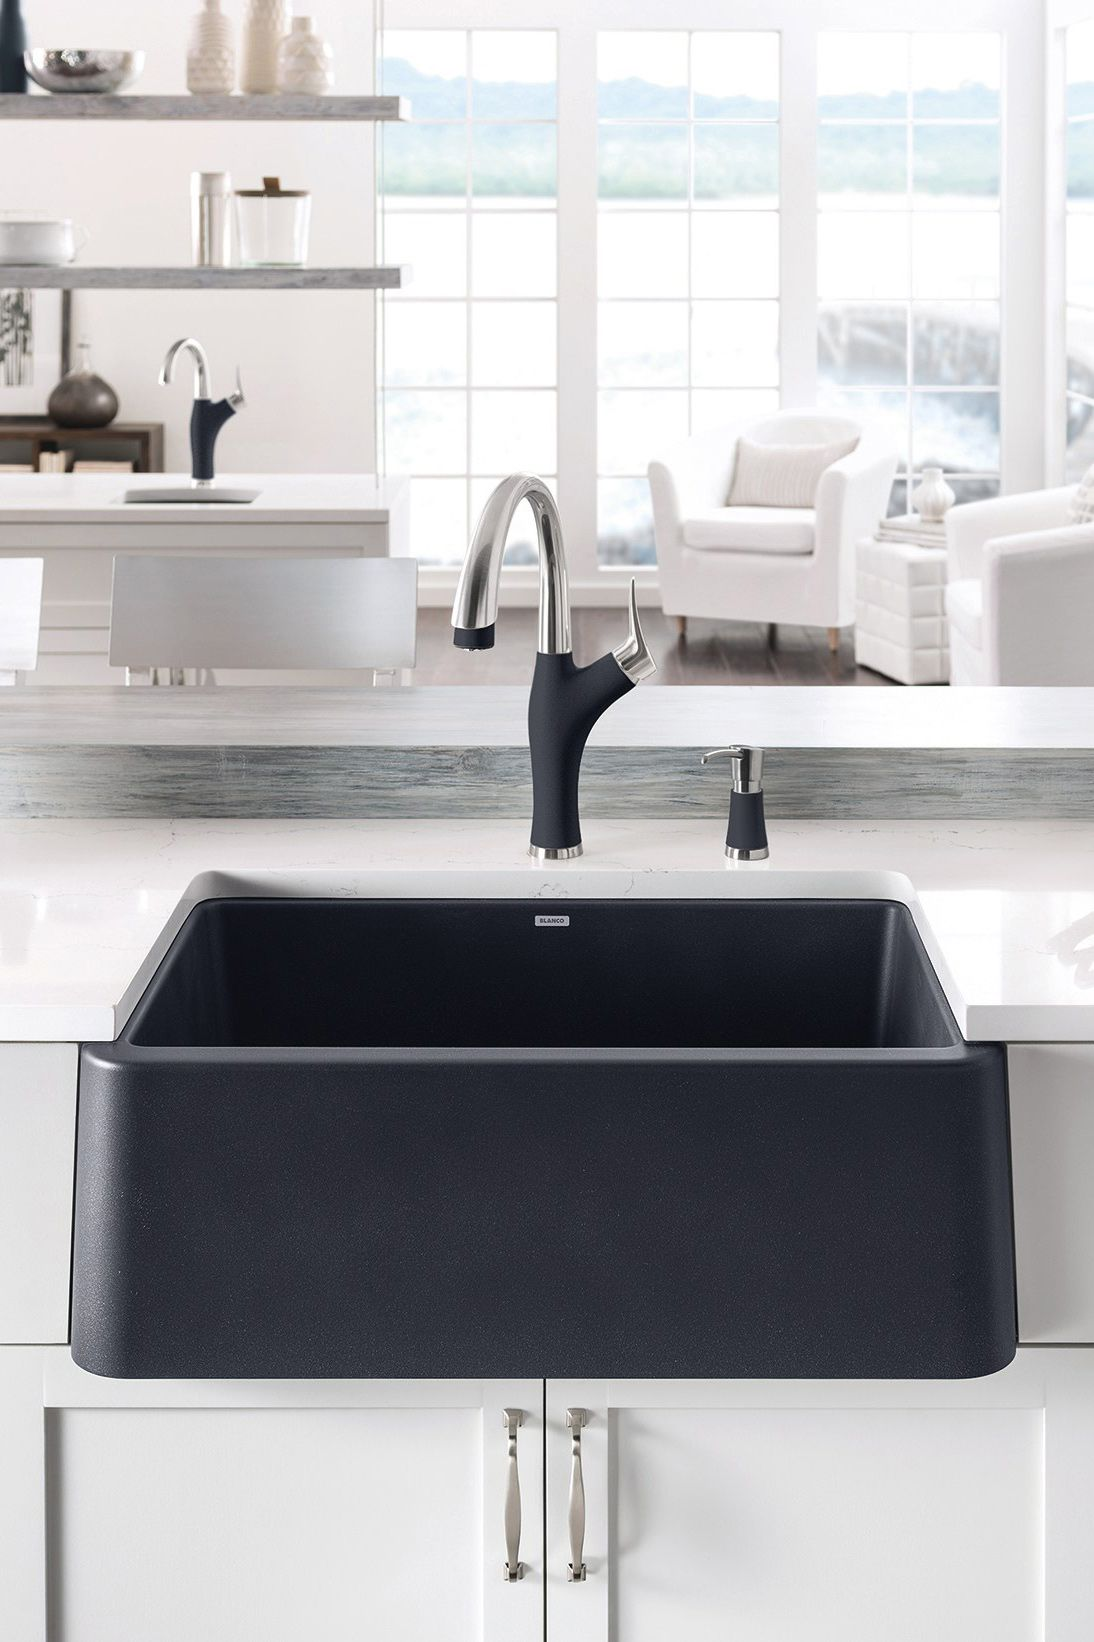 From The Ikon Collection This Apron Front Sink From